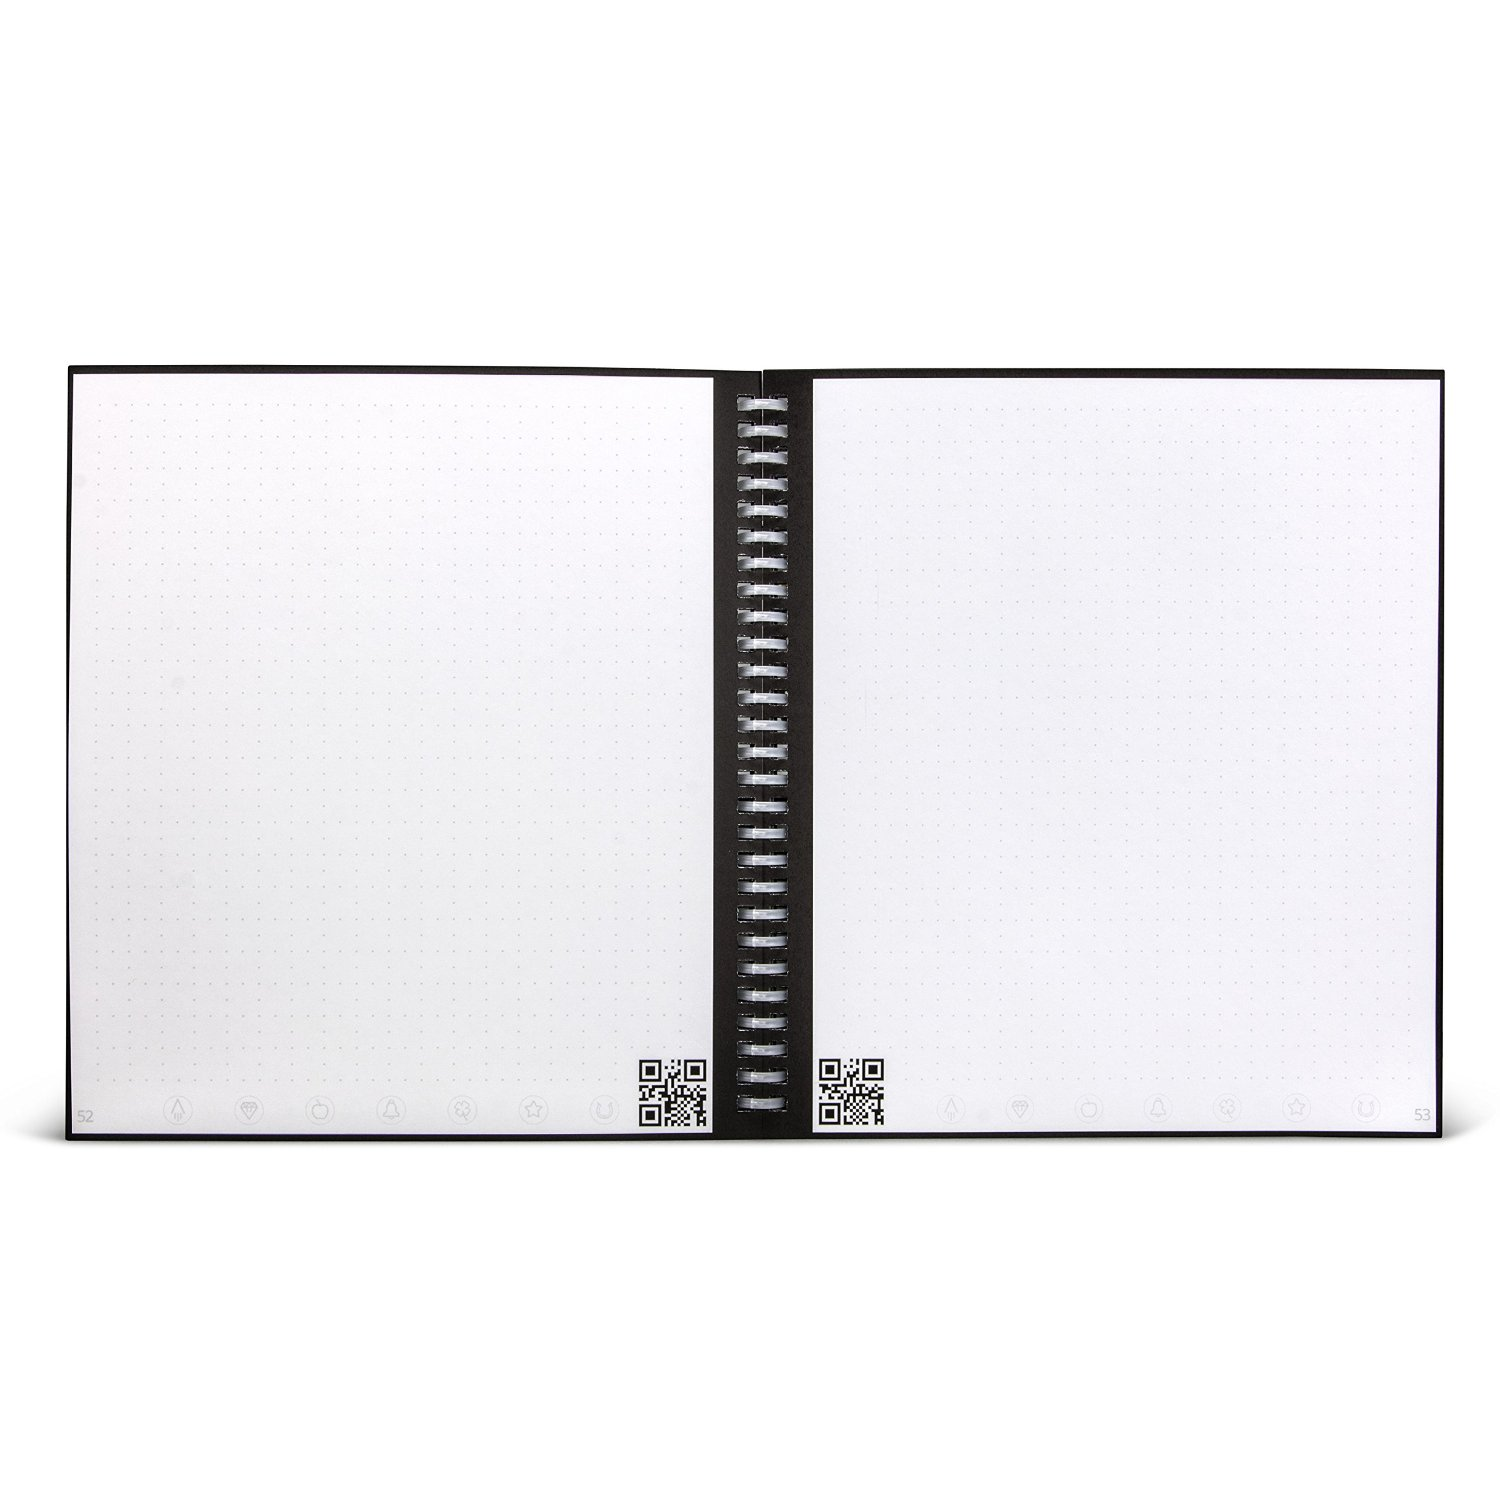 wave smart notebook introducing the world s first smart microwave to erase and reuse notebook by rocketbook walmart com